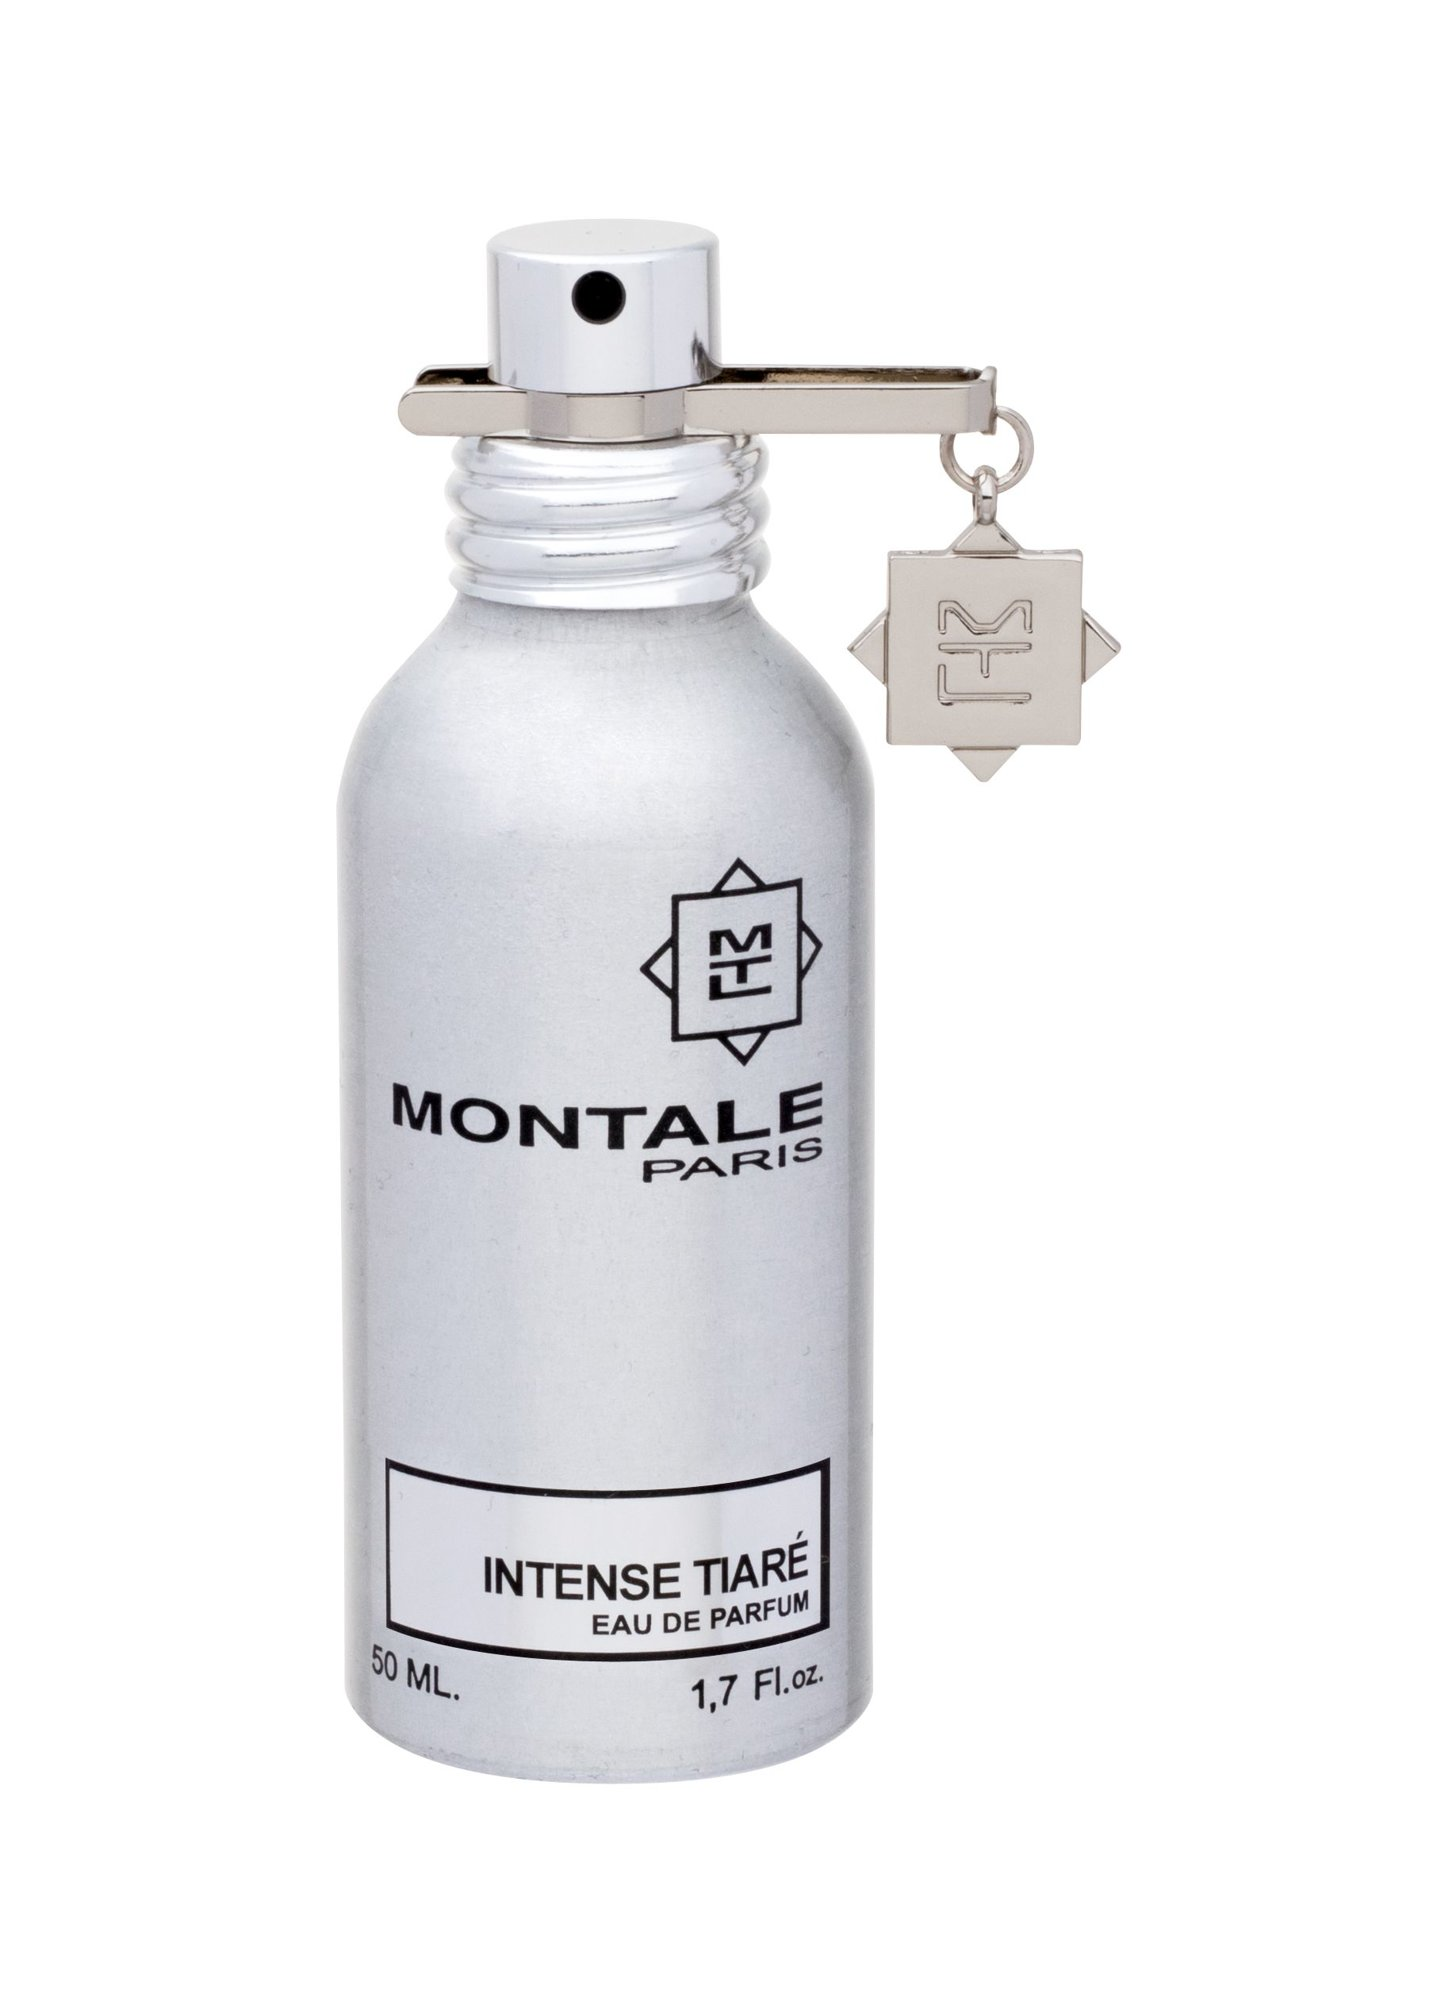 Montale Paris Intense Tiaré EDP 50ml